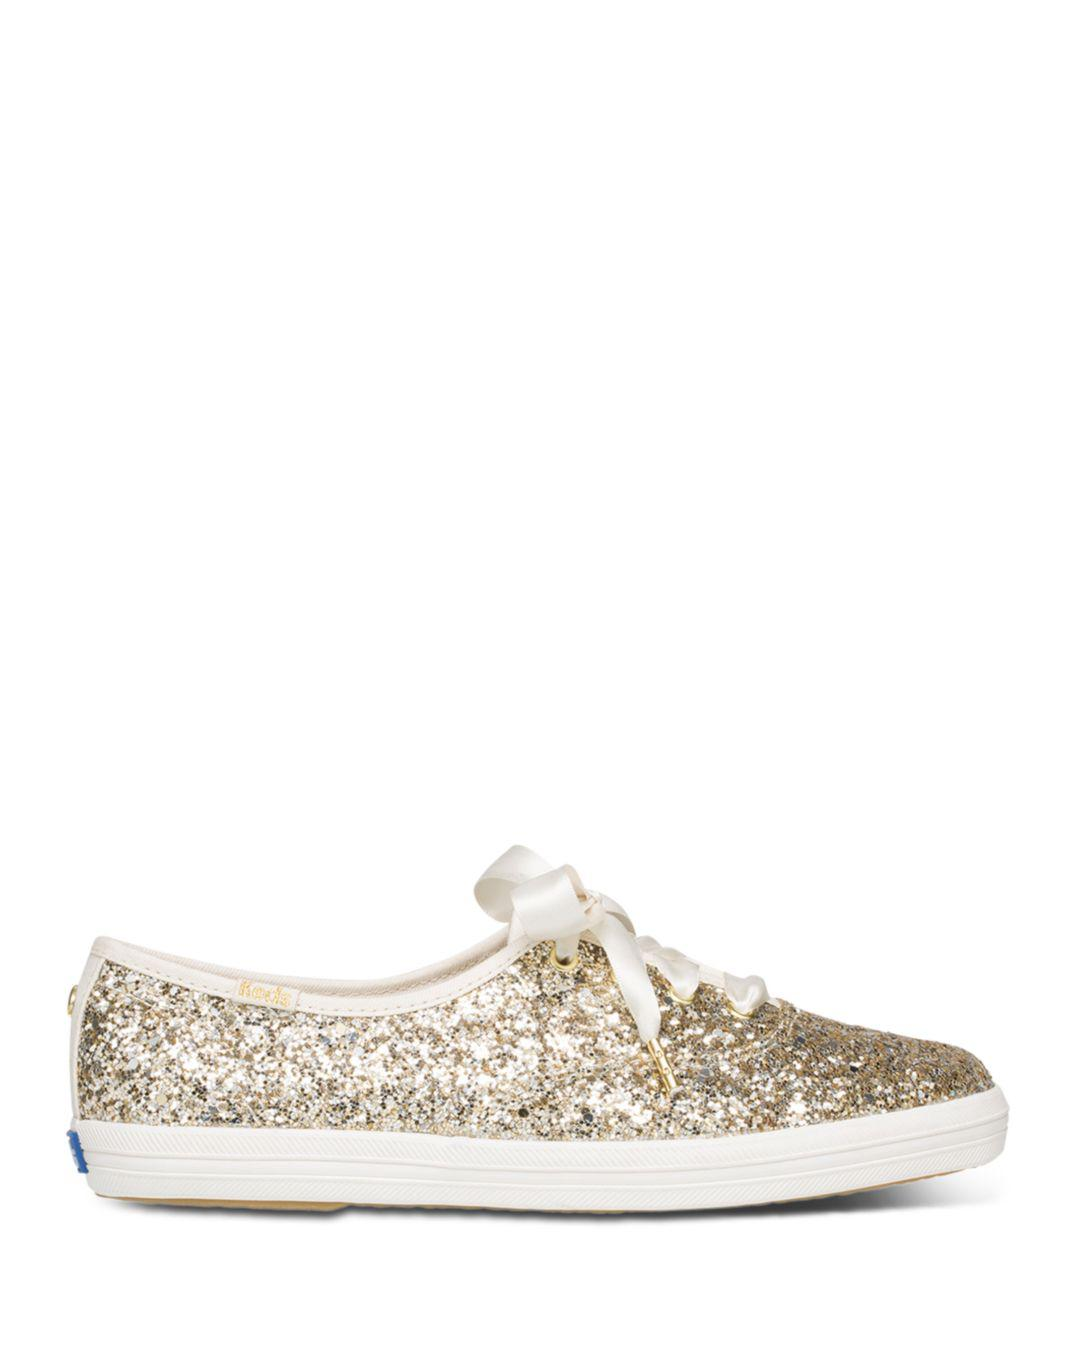 aca35bf234 Lyst - Keds X Kate Spade New York Women s Glitter Lace Up Sneakers - Save  31%